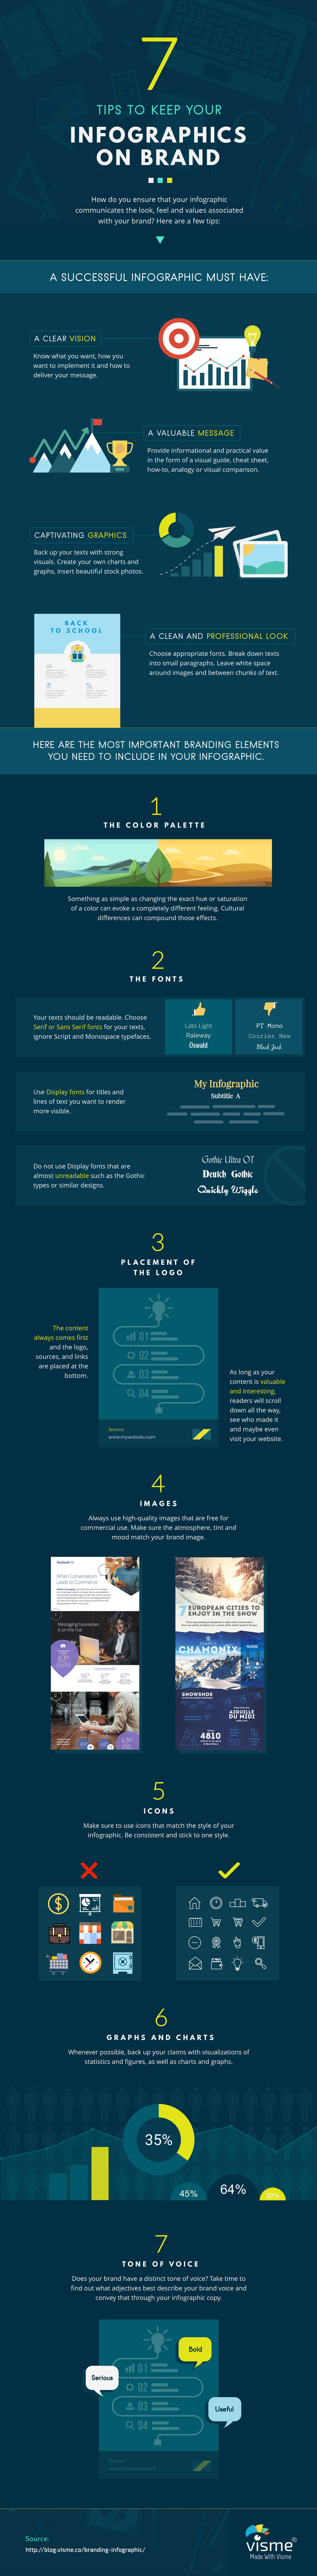 branding infographic 7 Tips to Keep Your Infographics on Brand Infographic